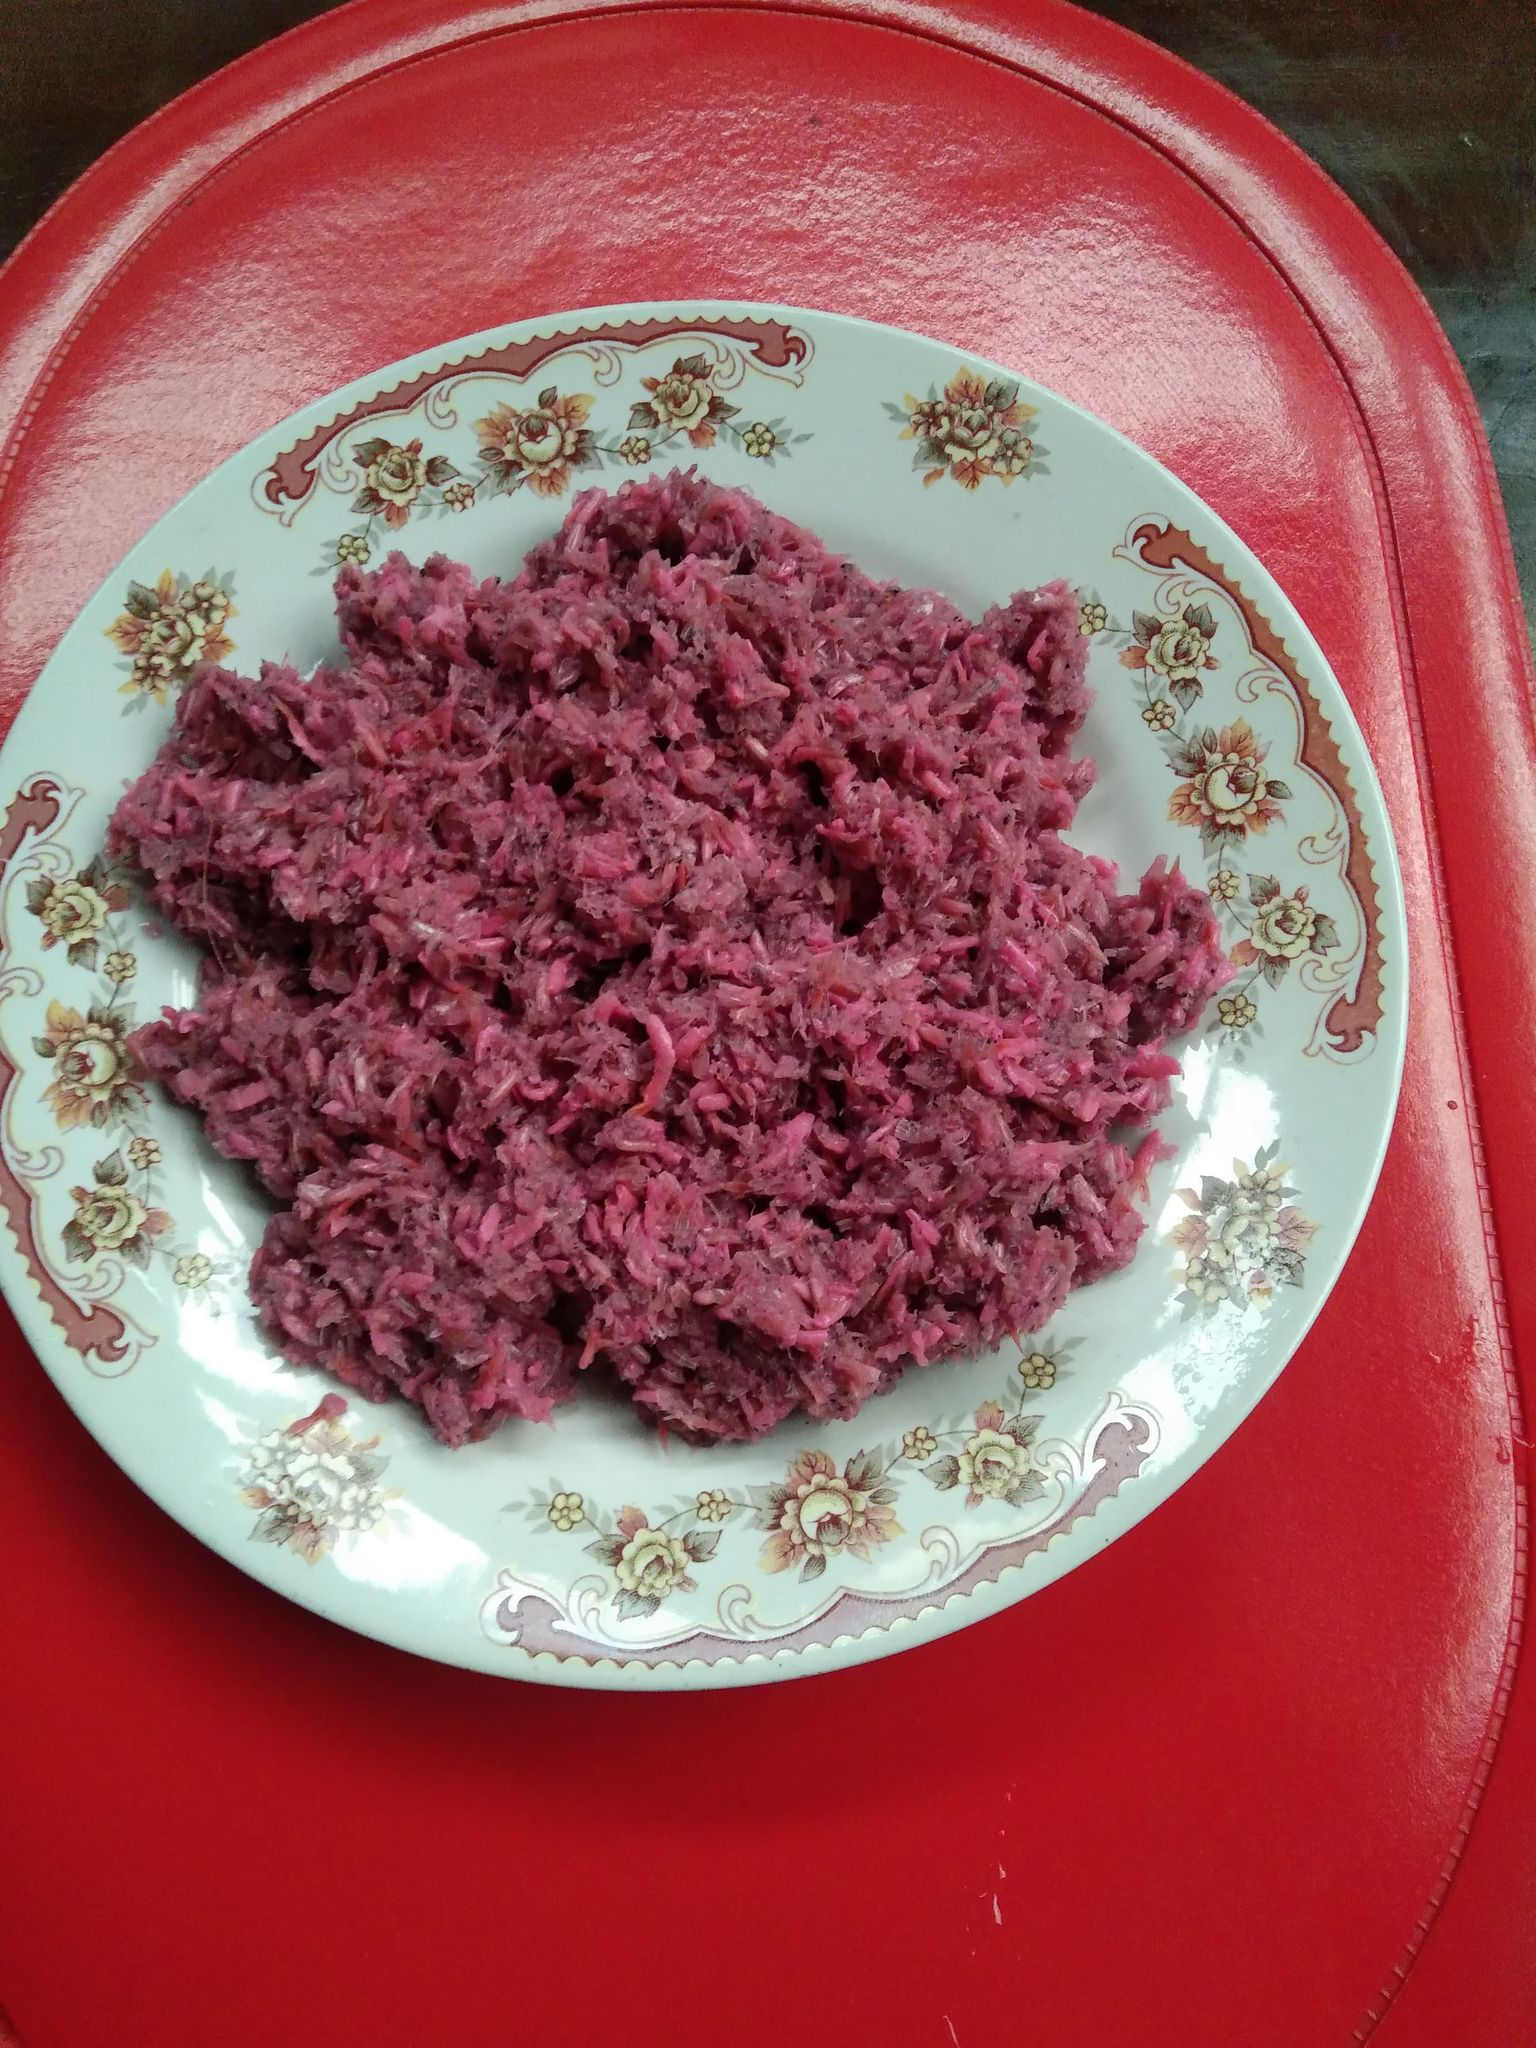 Bagoong on a plate